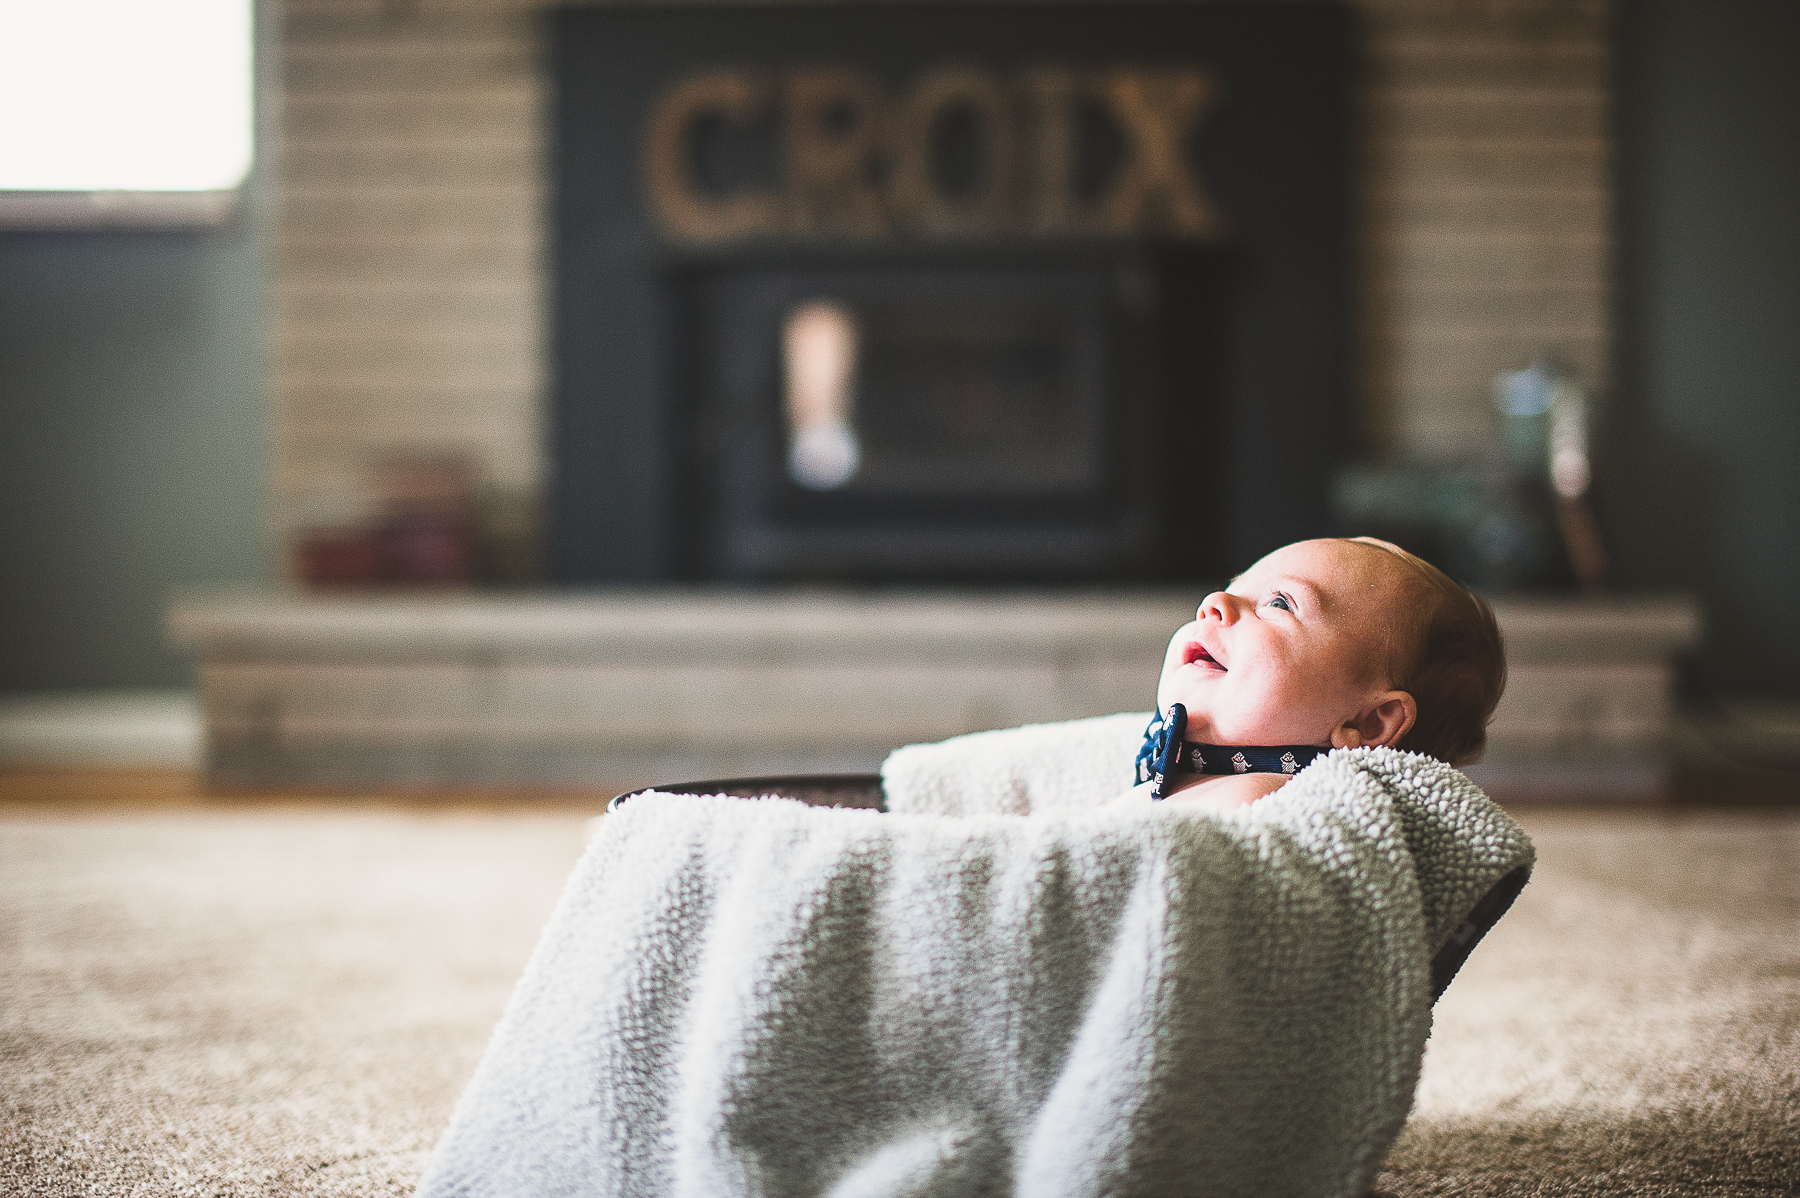 breighton-and-basette-photography-copyrighted-image-blog-croix-newborn-042.jpg